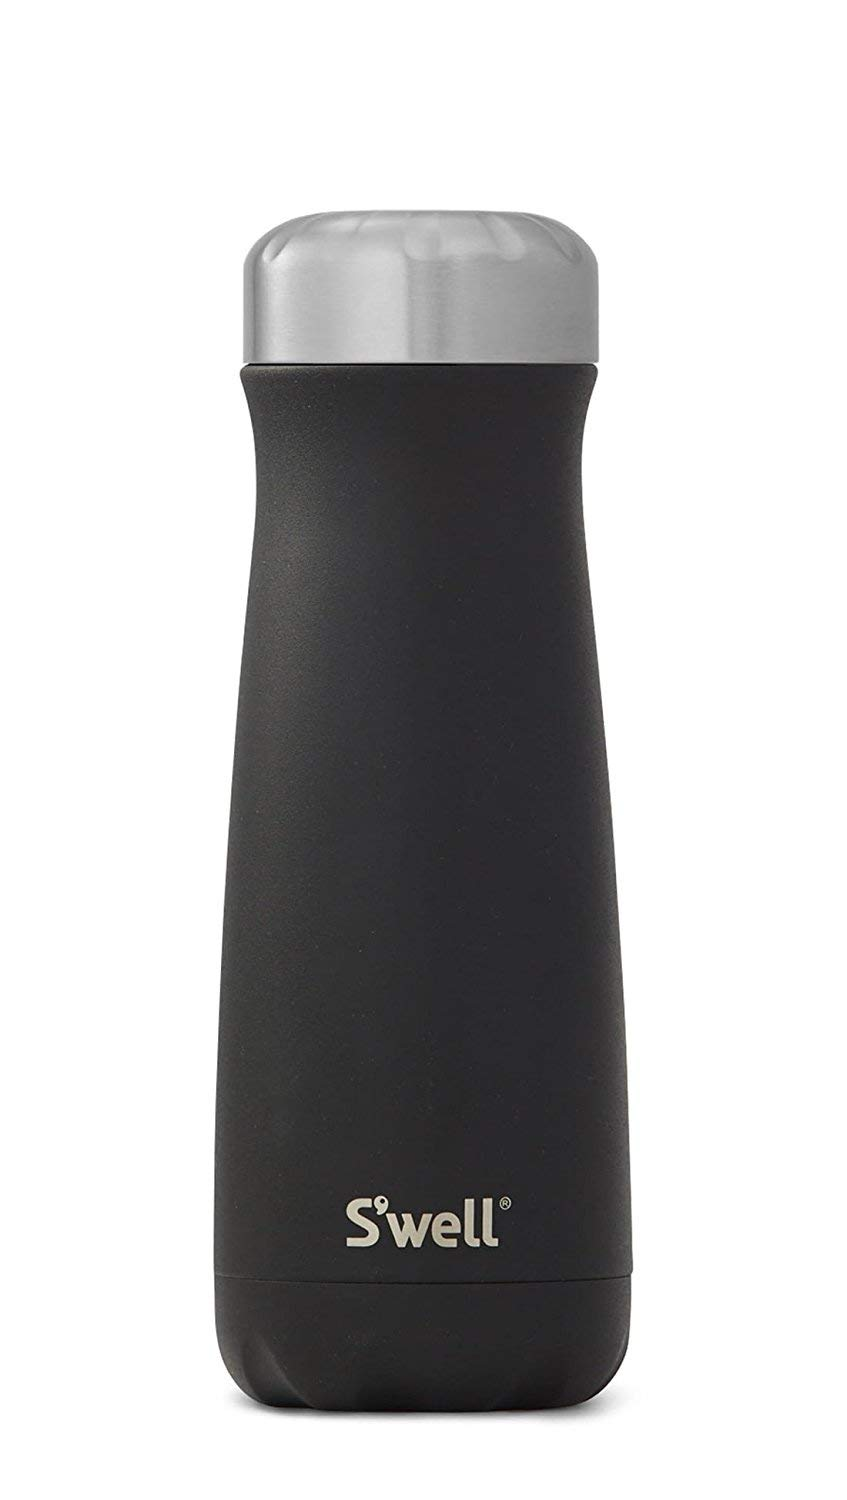 S'well Traveler Insulated 18/8 Stainless Steel - 20 Oz / 590 ml